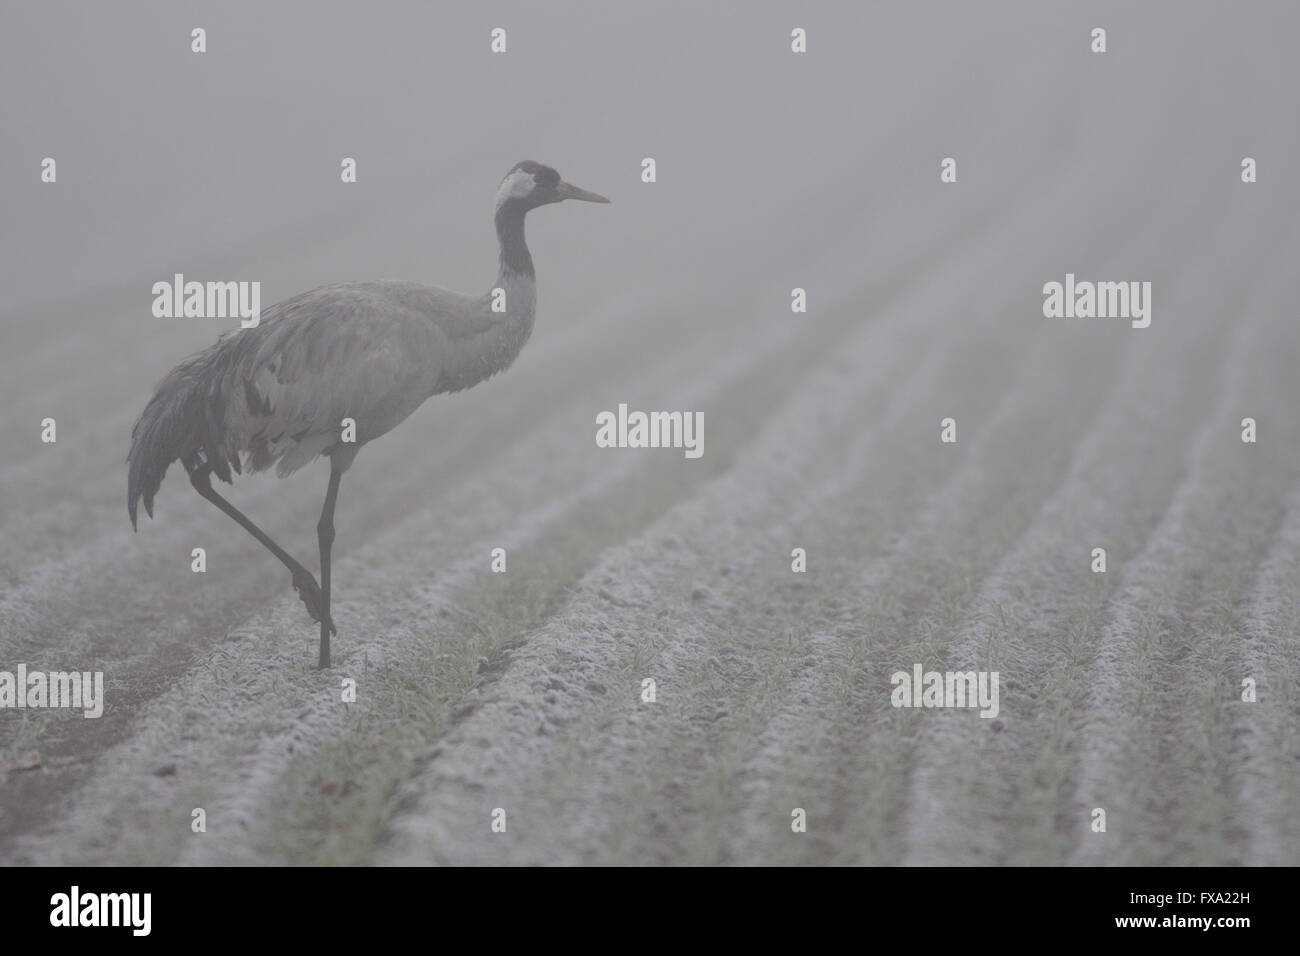 Common Crane / Grauer Kranich ( Grus grus ) walking over a foggy field searching for food. Stock Photo